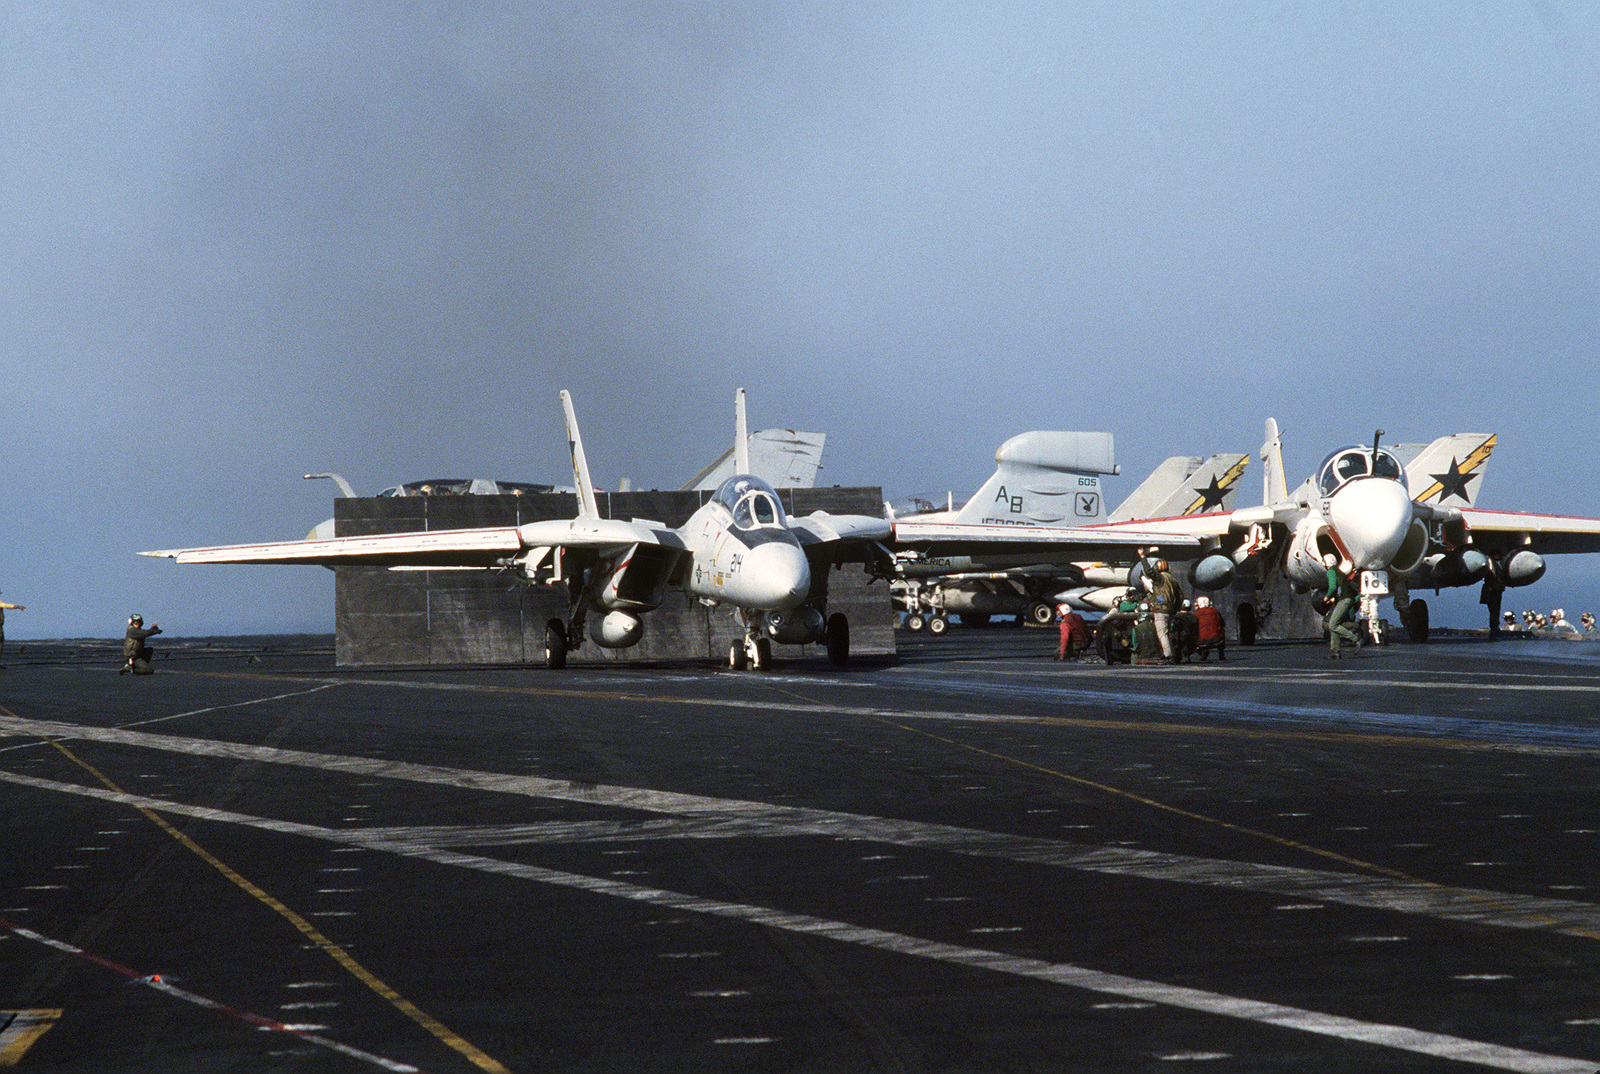 An F-14A Tomcat aircraft, left, and an A-6E Intruder aircraft prepare to take off from the aircraft carrier USS AMERICA (CV 66) during flight operations off the coast of Libya